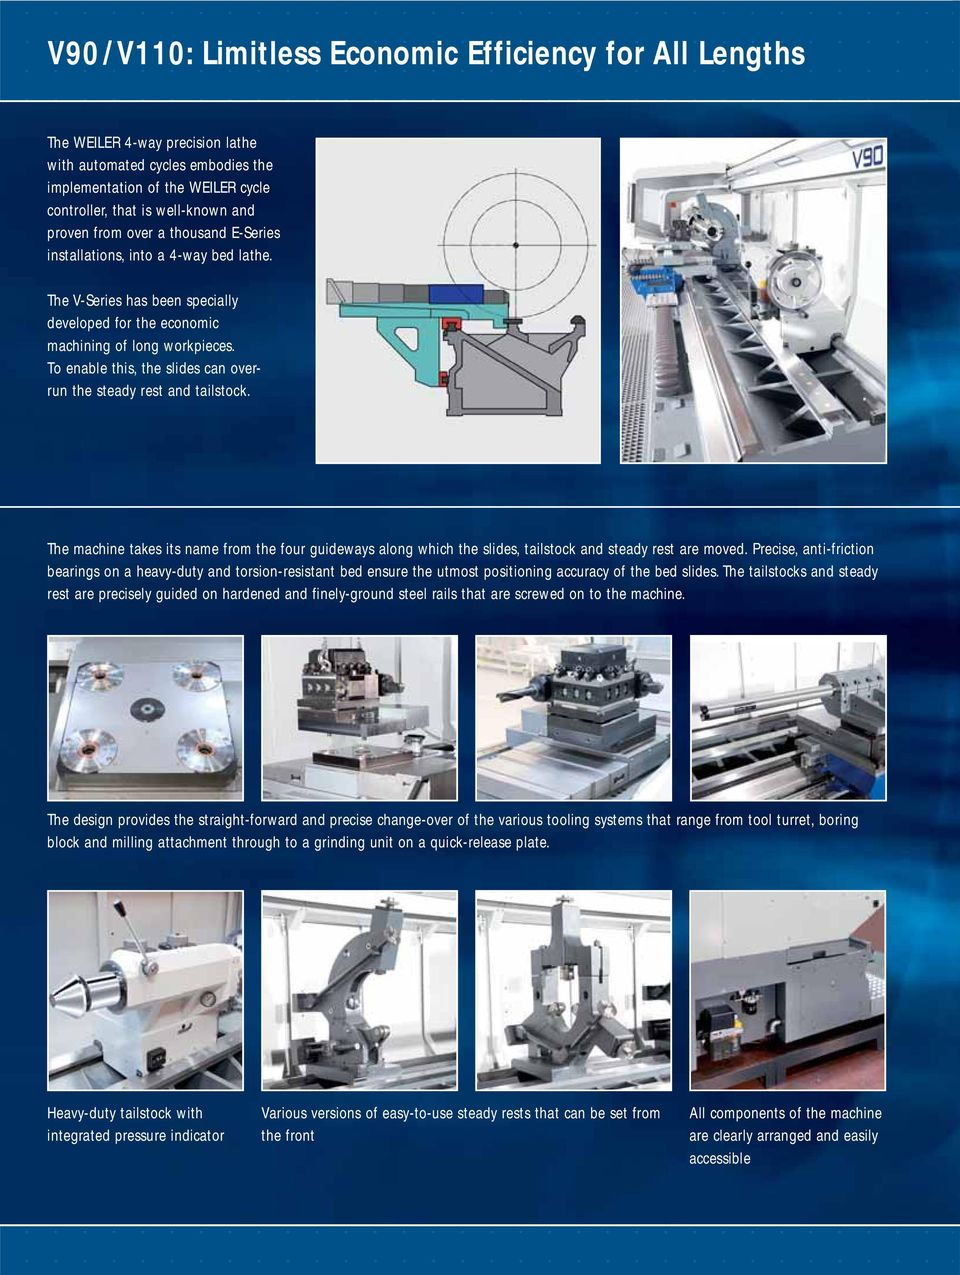 To enable this, the slides can overrun the steady rest and tailstock. The machine takes its name from the four guideways along which the slides, tailstock and steady rest are moved.